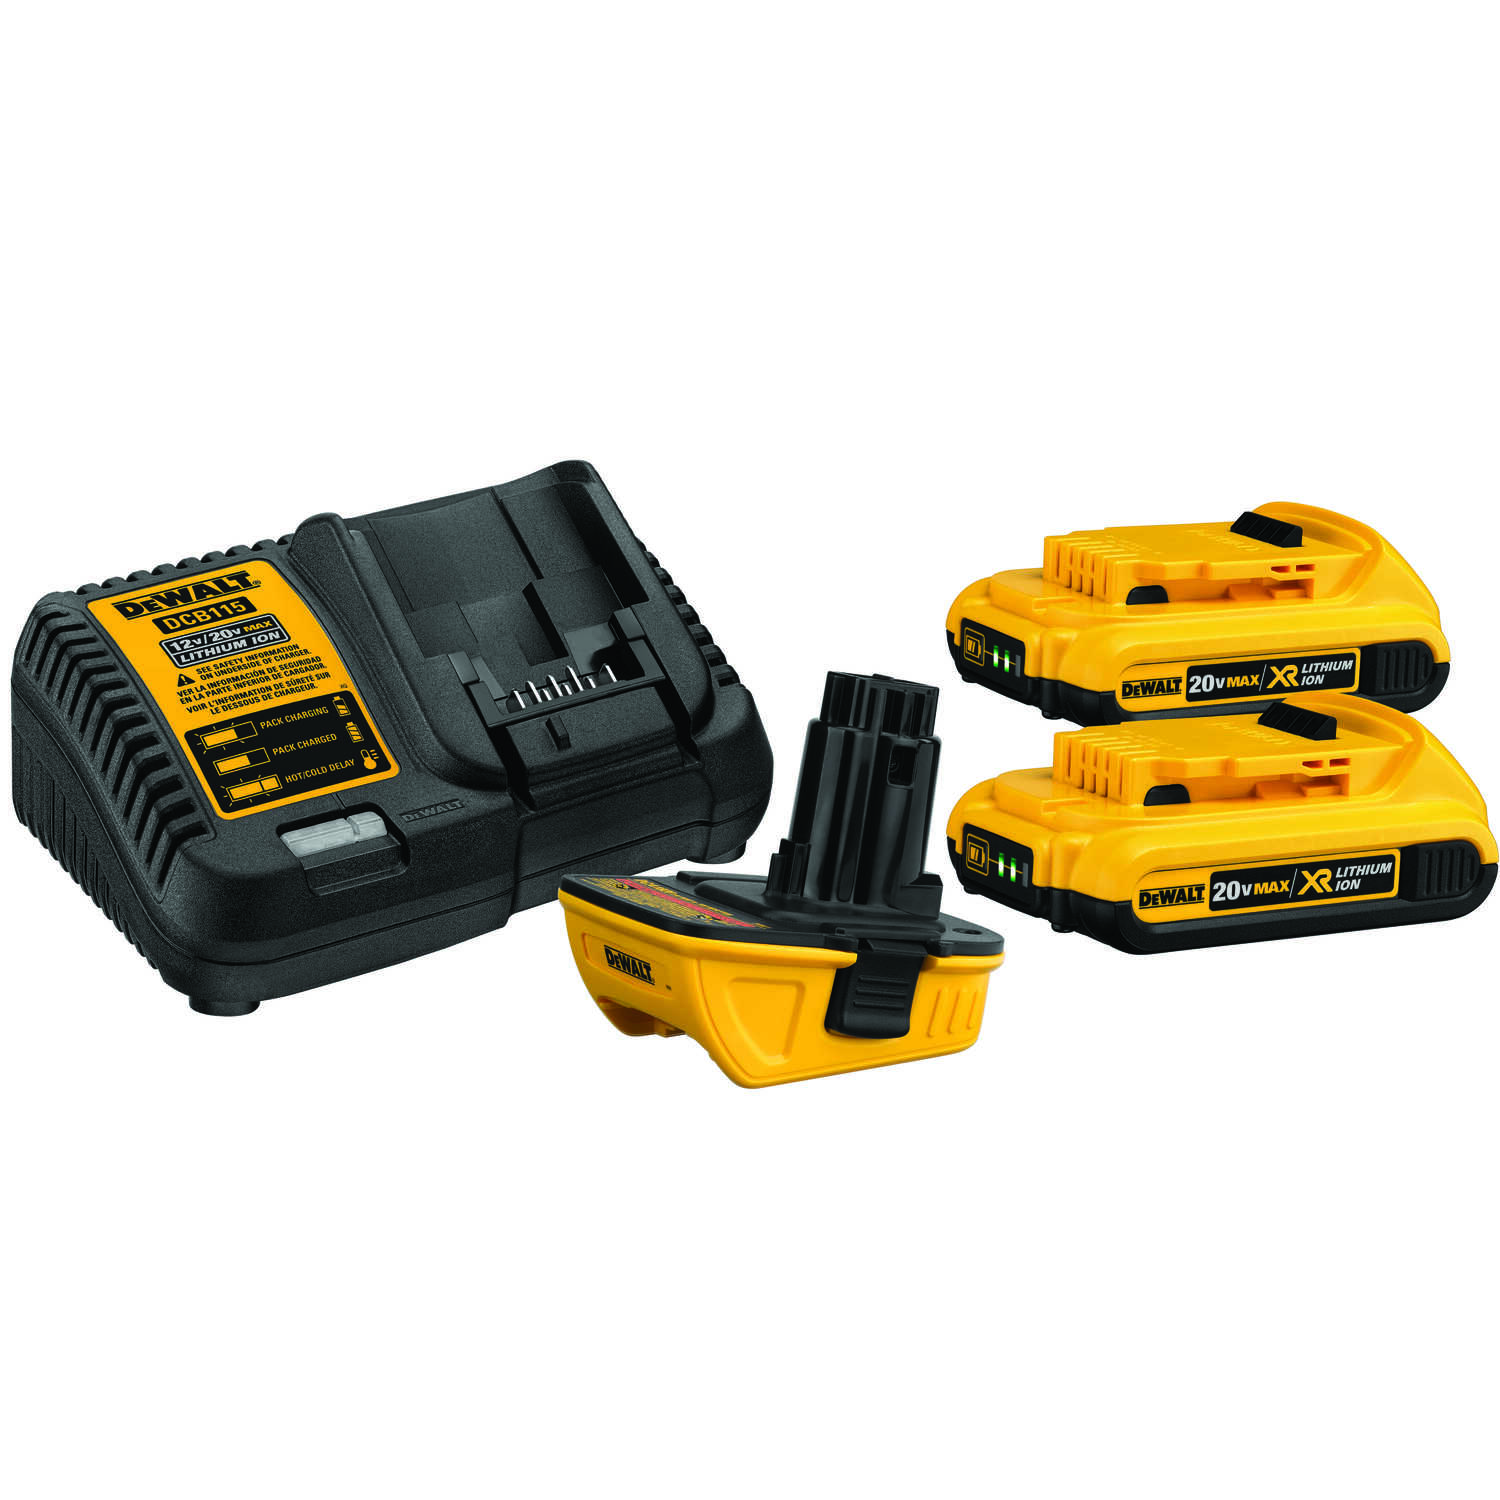 DeWalt  XR  20 max volts Lithium-Ion  4 pc. Battery Charger Kit